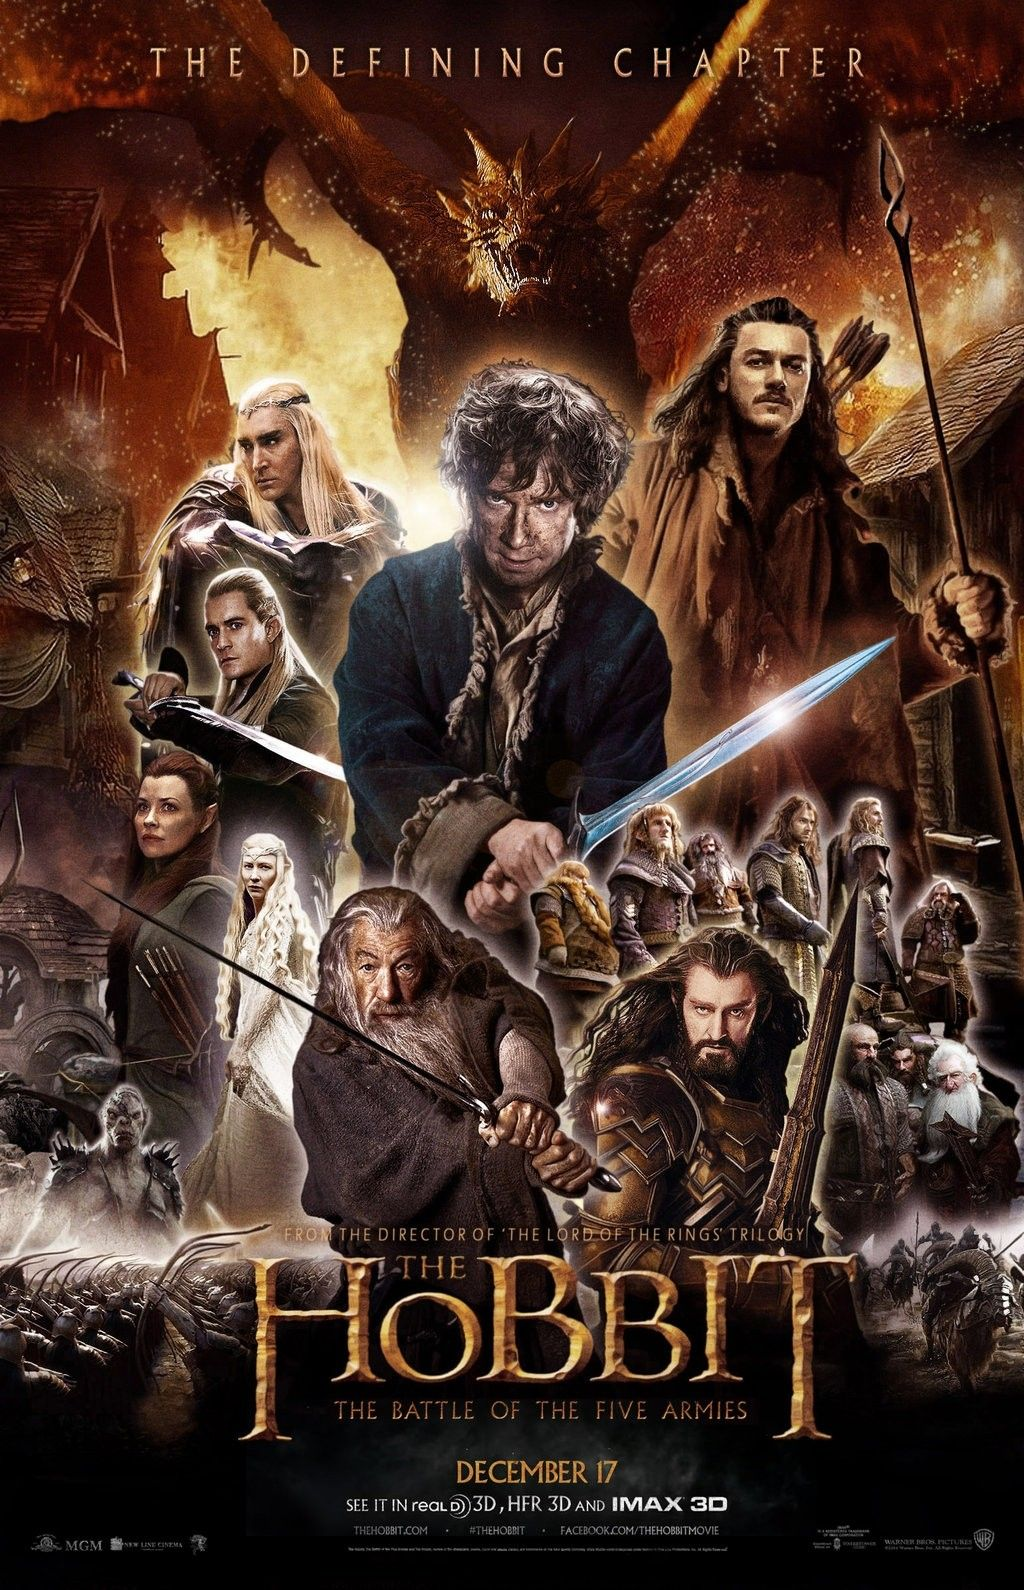 The Hobbit The Battle Of The Five Armies 2014 The Hobbit The Hobbit Movies Hobbit 3